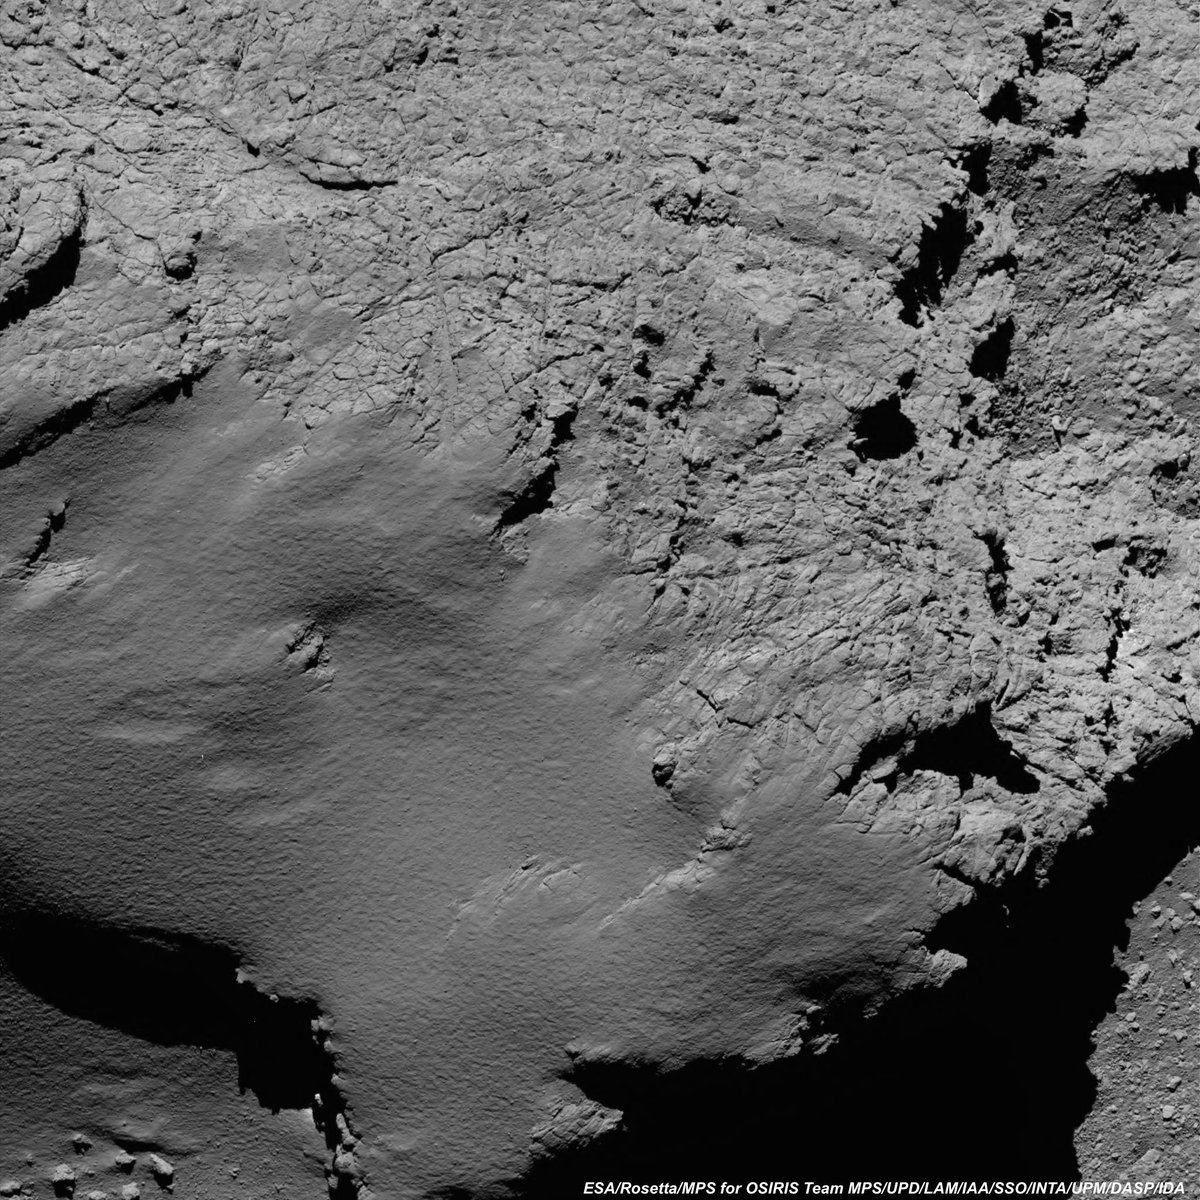 Watch live as the Rosetta probe 'softly' crashes into comet 67P